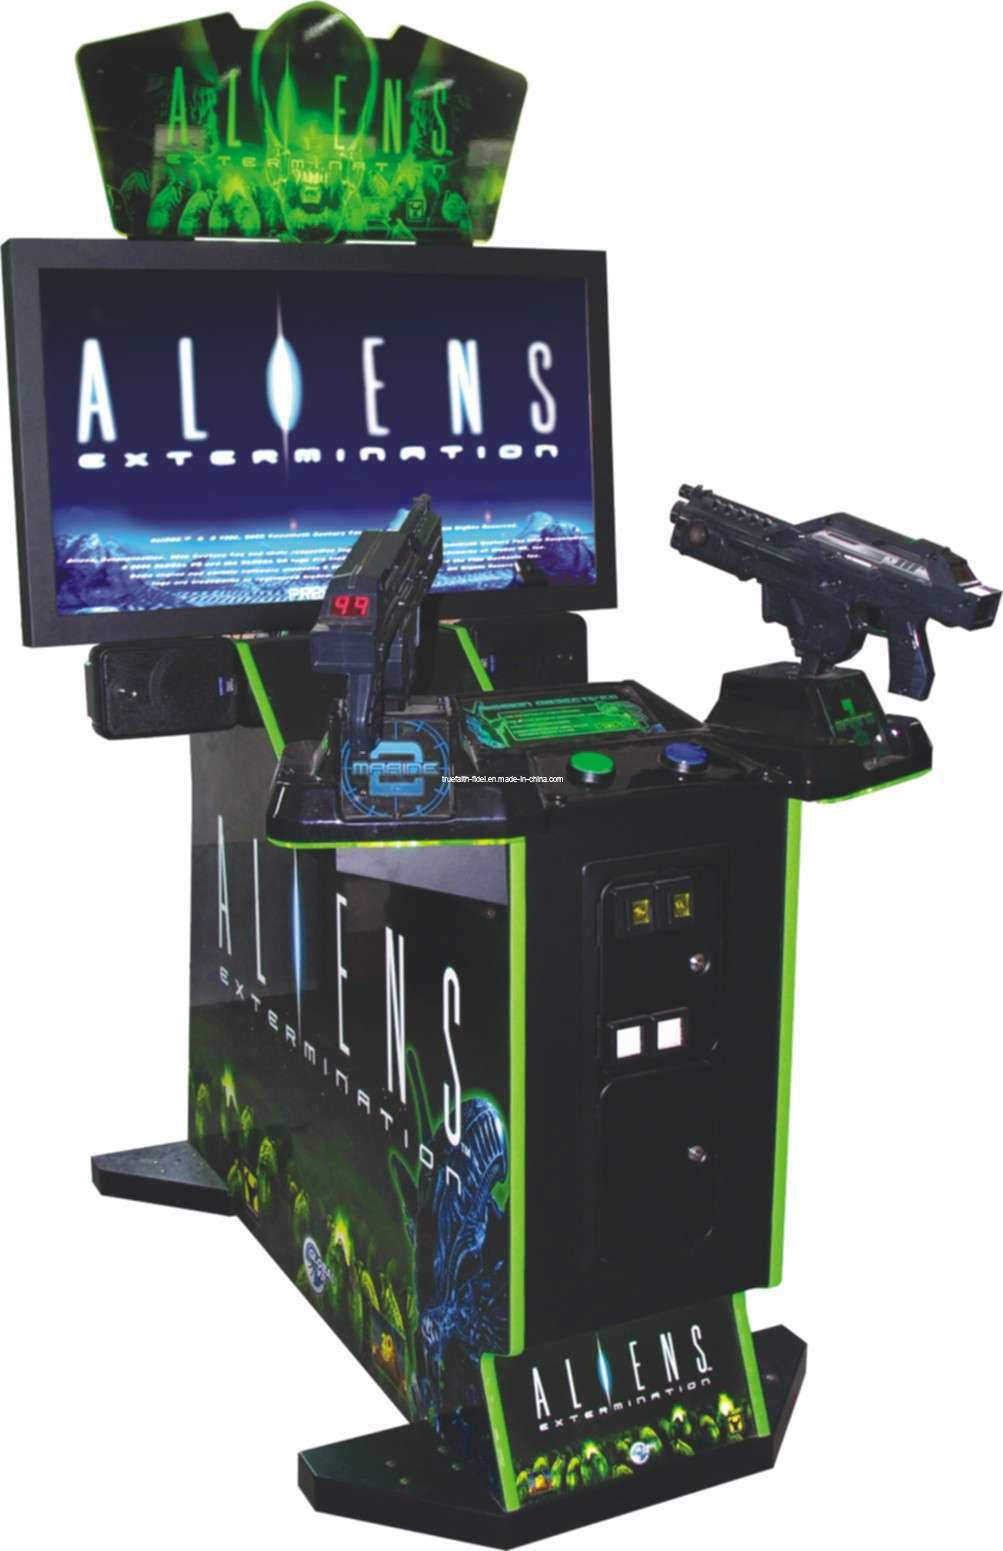 Coin-Operated-Arcade-Game-Machine-Aliens-Shooting-AM-S06-.jpg